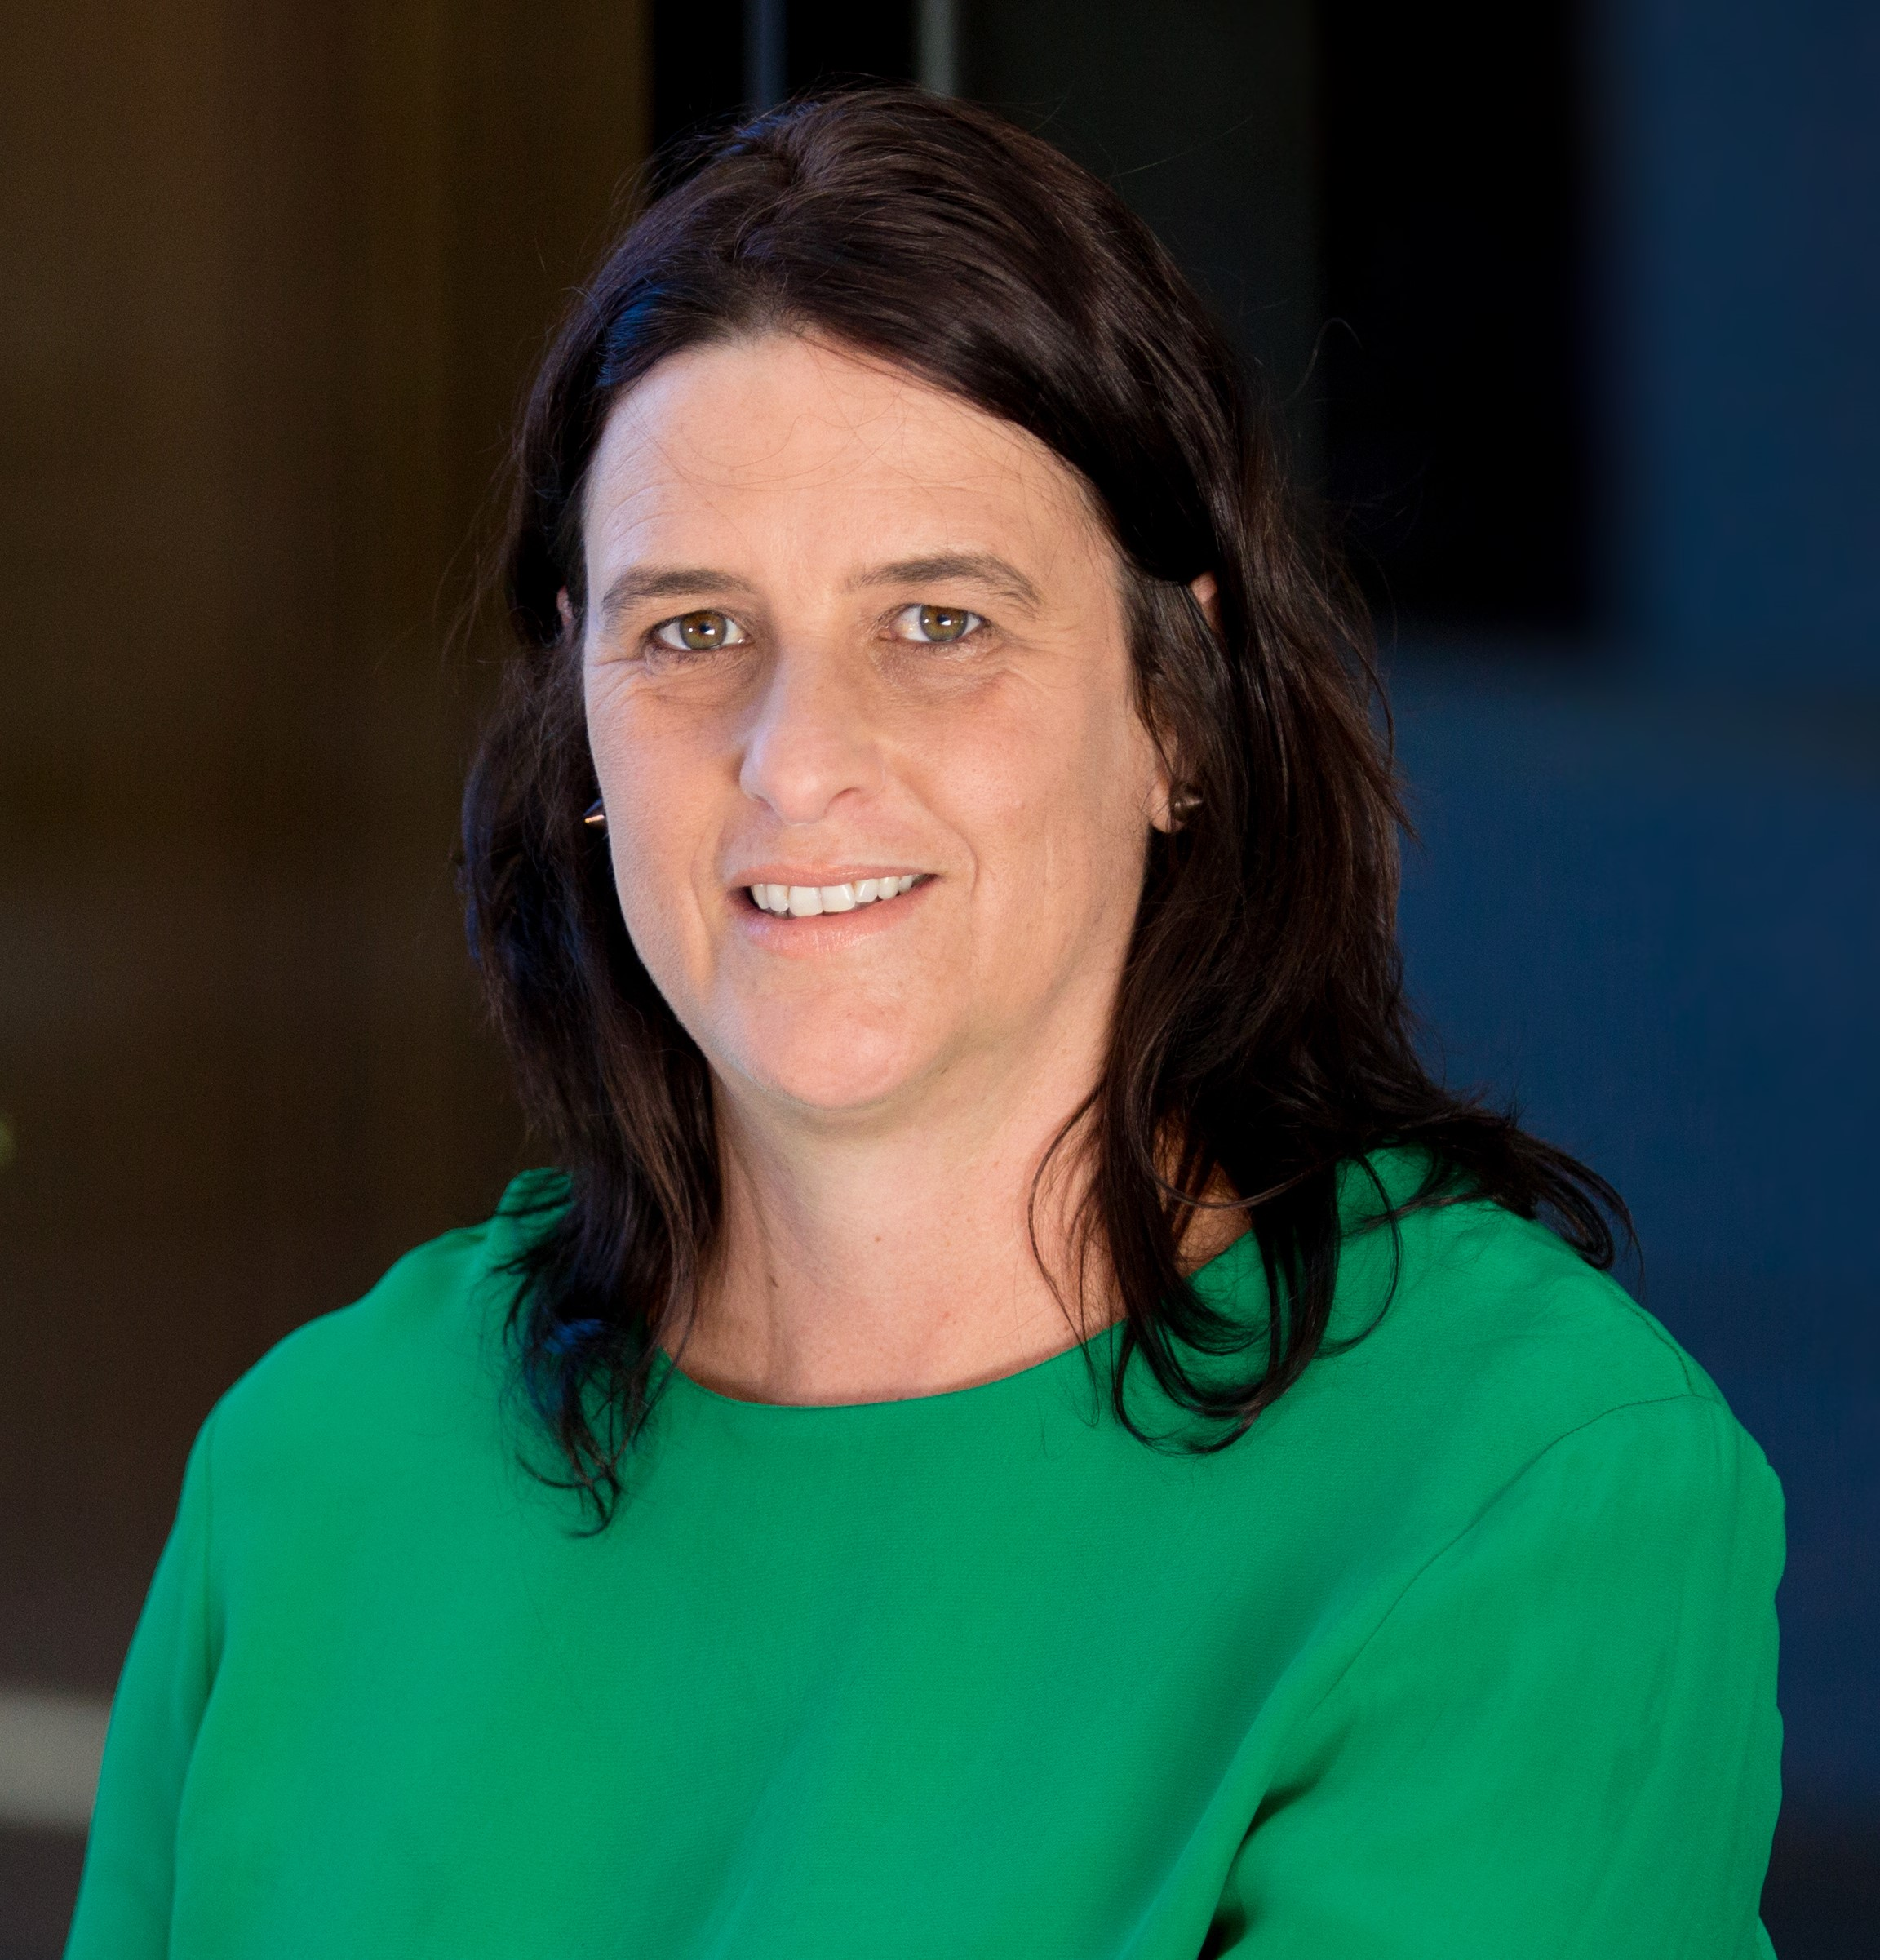 Jen MacNevin, Executive Support Officer - Jennifer is an accomplished Executive Officer with over 20 years' experience. The past 10 of those years have been spent in the University sector, predominantly working for the Health Science Faculty, University of Queensland and Health related Schools and Centre's. Jennifer is highly approachable and well-organised, with extensive experience in supporting senior-level managers and academics.